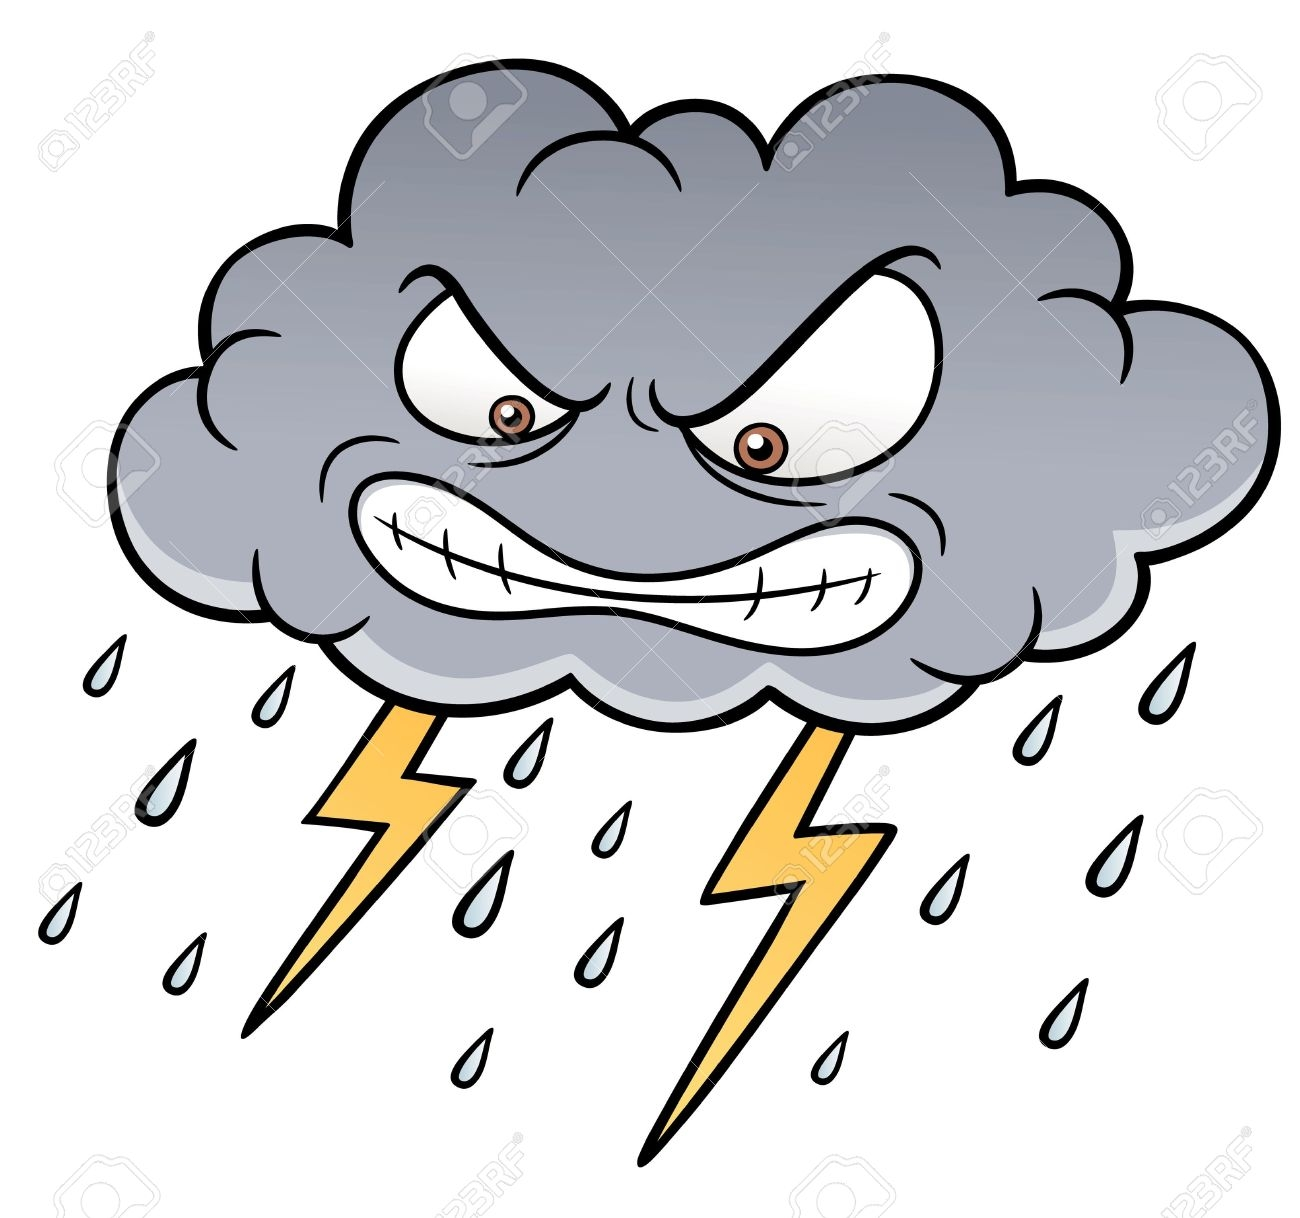 Stormy weather clipart 7 » Clipart Station.